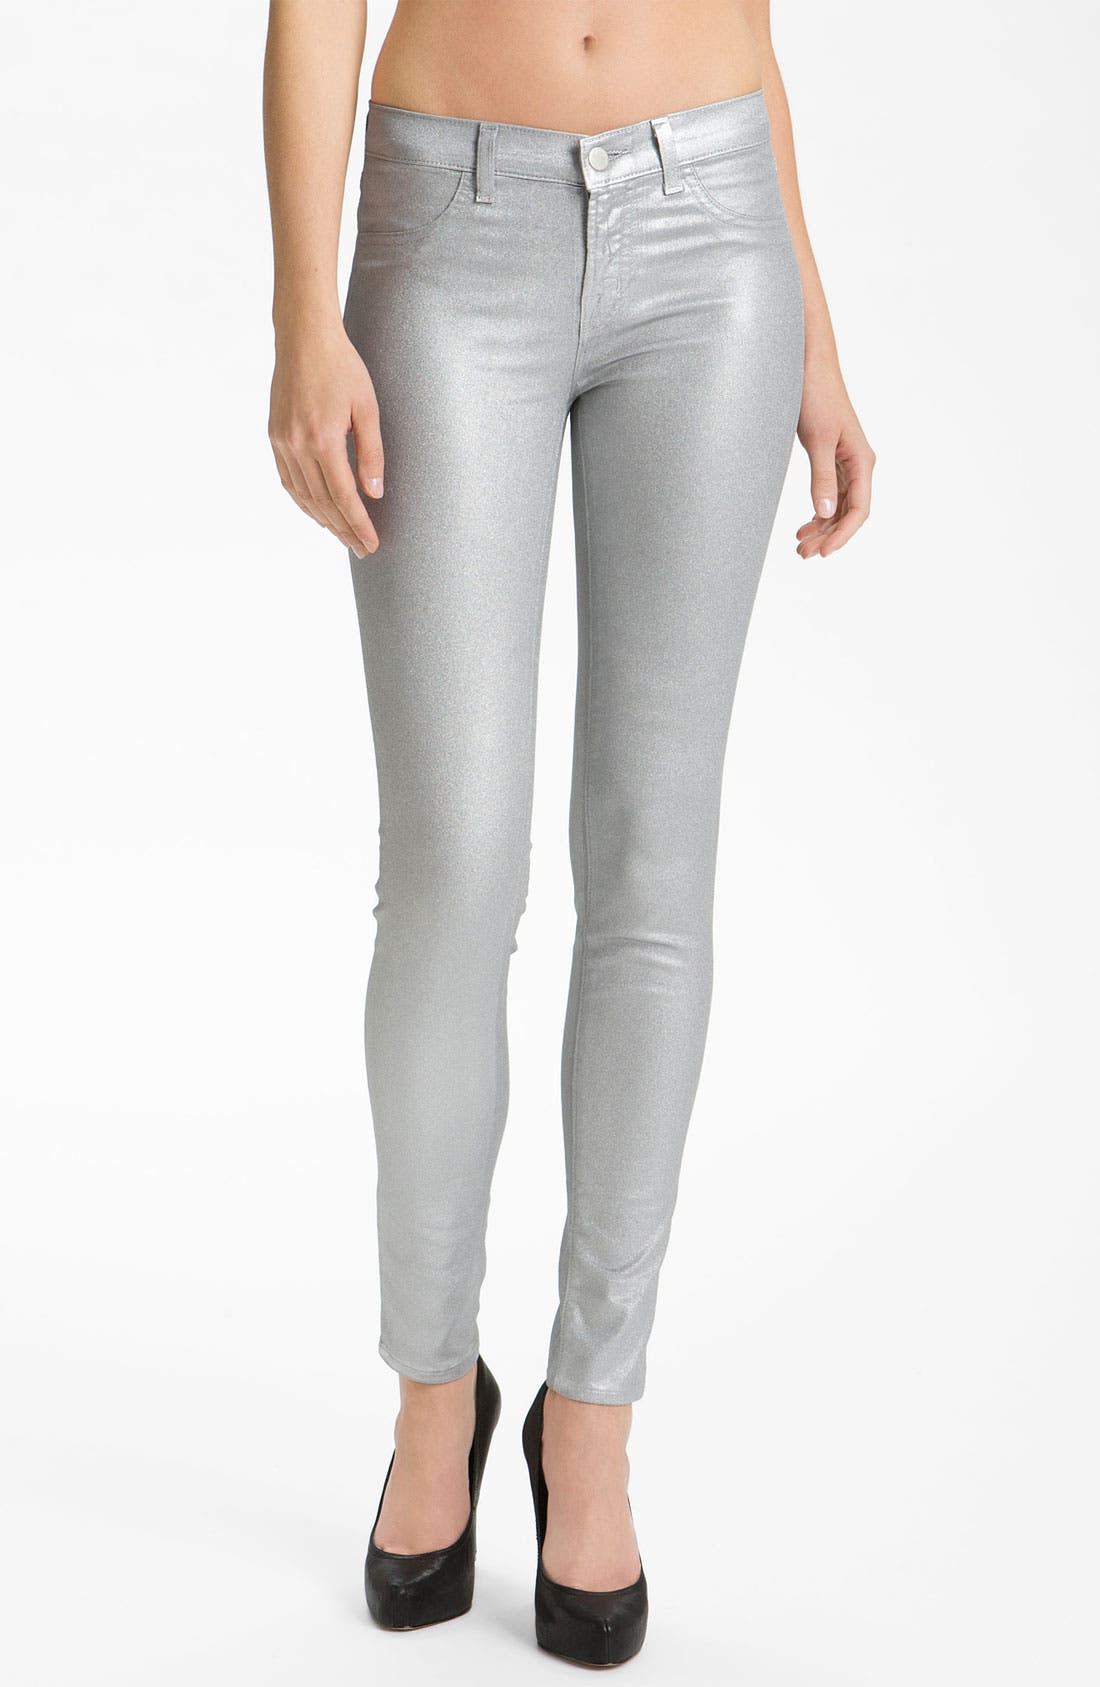 Main Image - J Brand Stretch Denim Leggings (Coated Silver Sparkle)